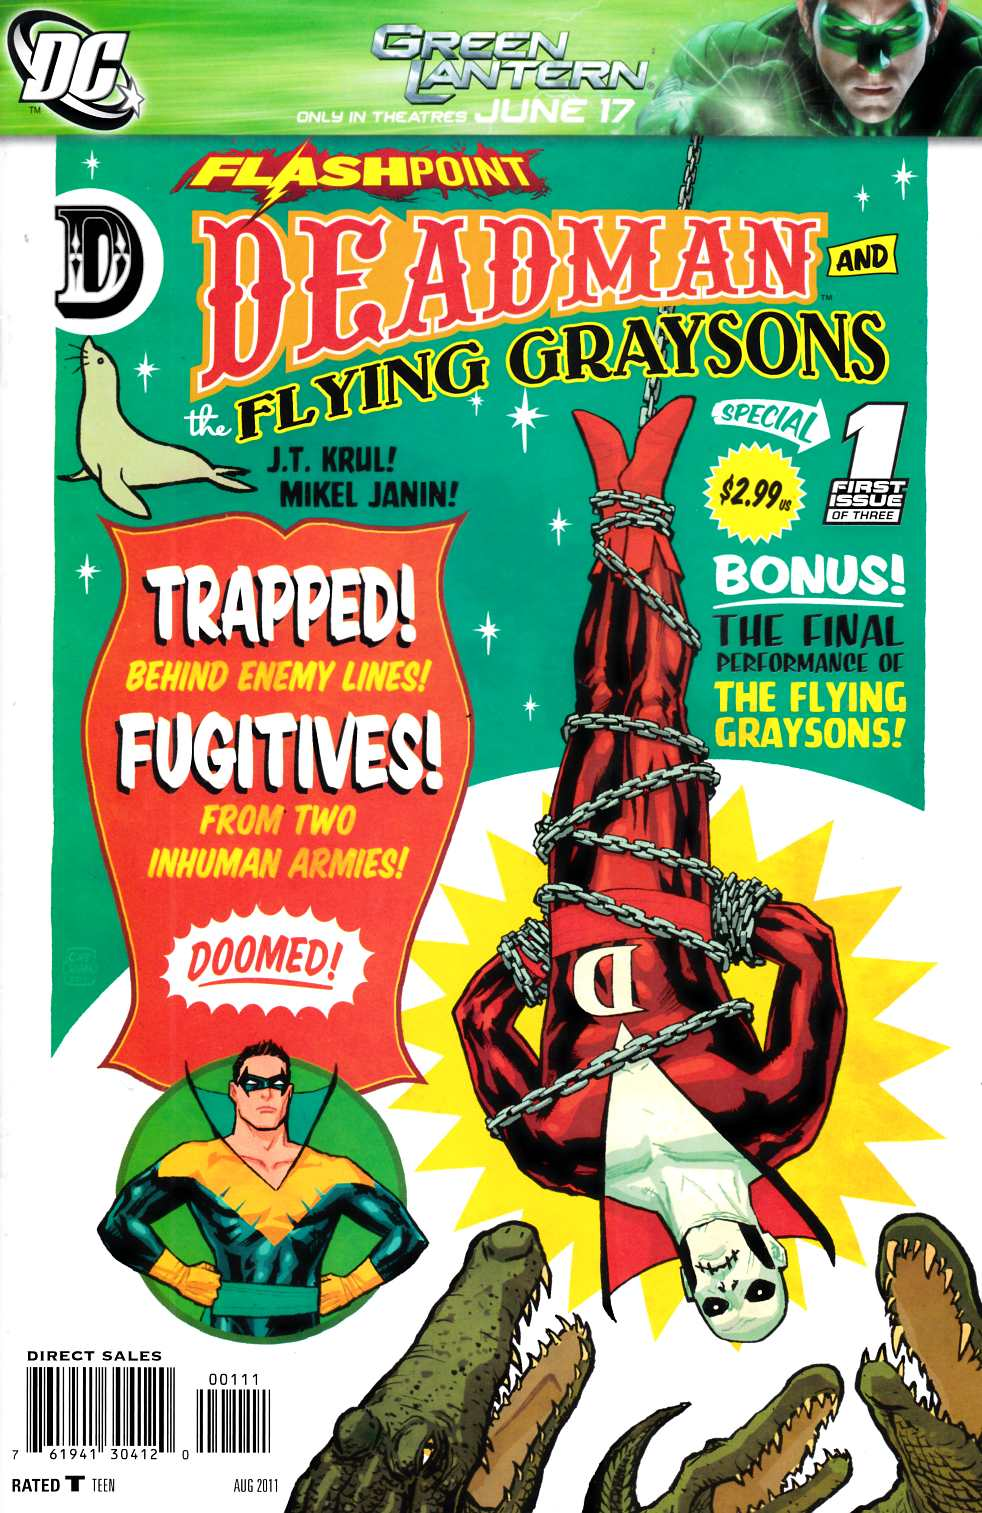 Flashpoint Deadman and the Flying Graysons #1 [DC Comic] Near Mint (9.4)